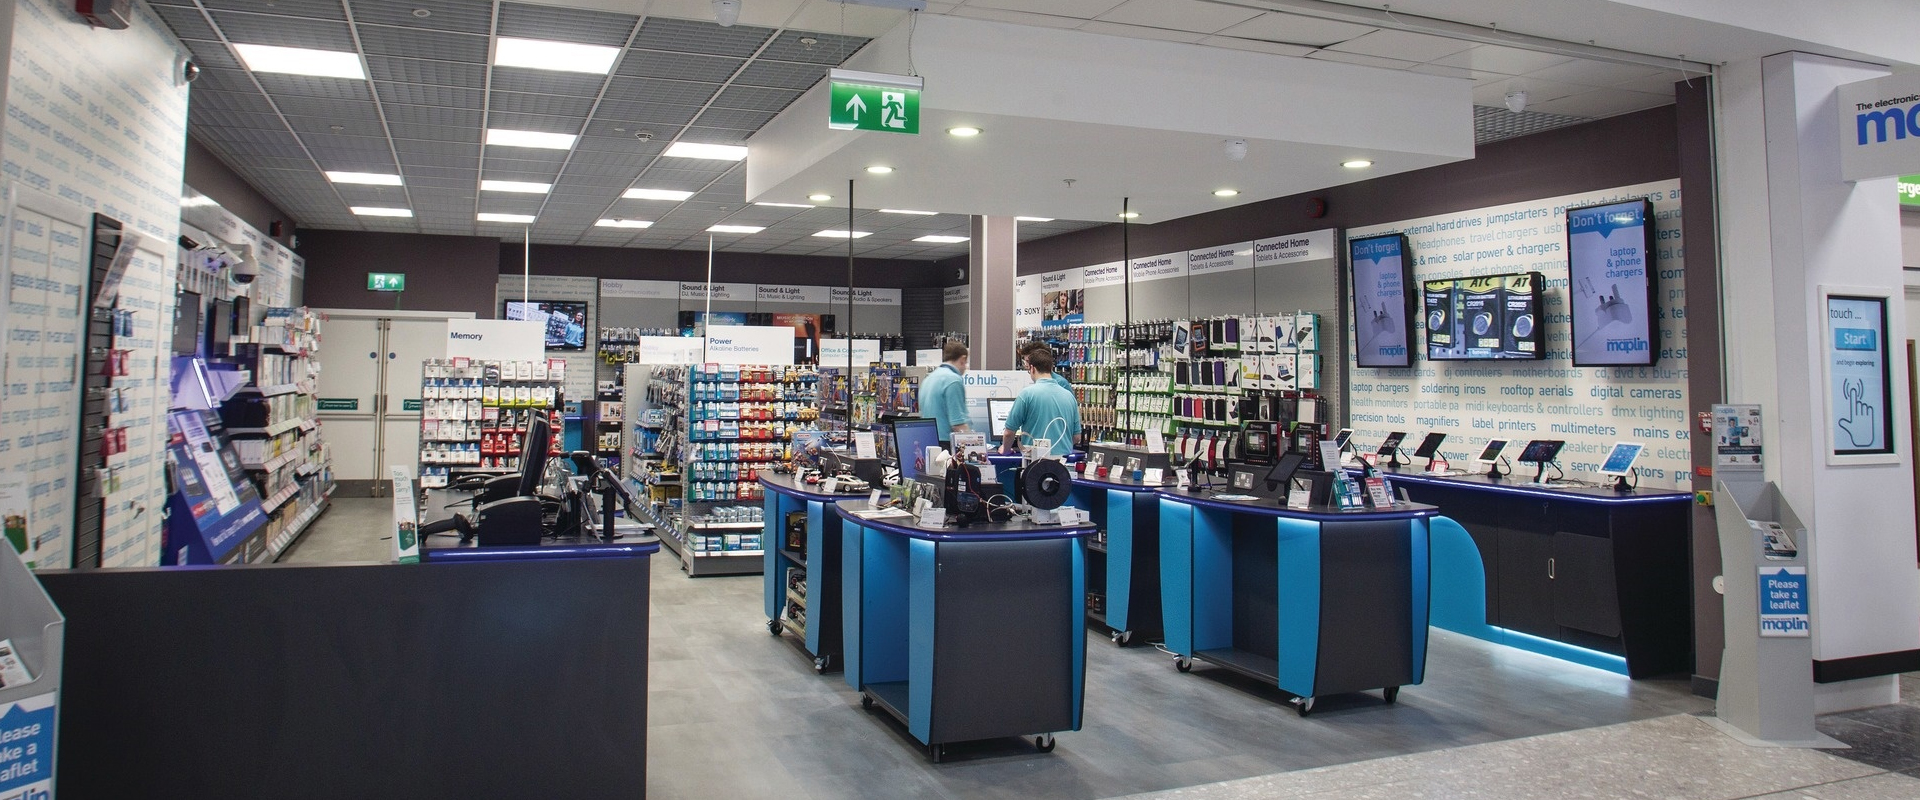 Sky AdSmart TV Case Study: Maplin